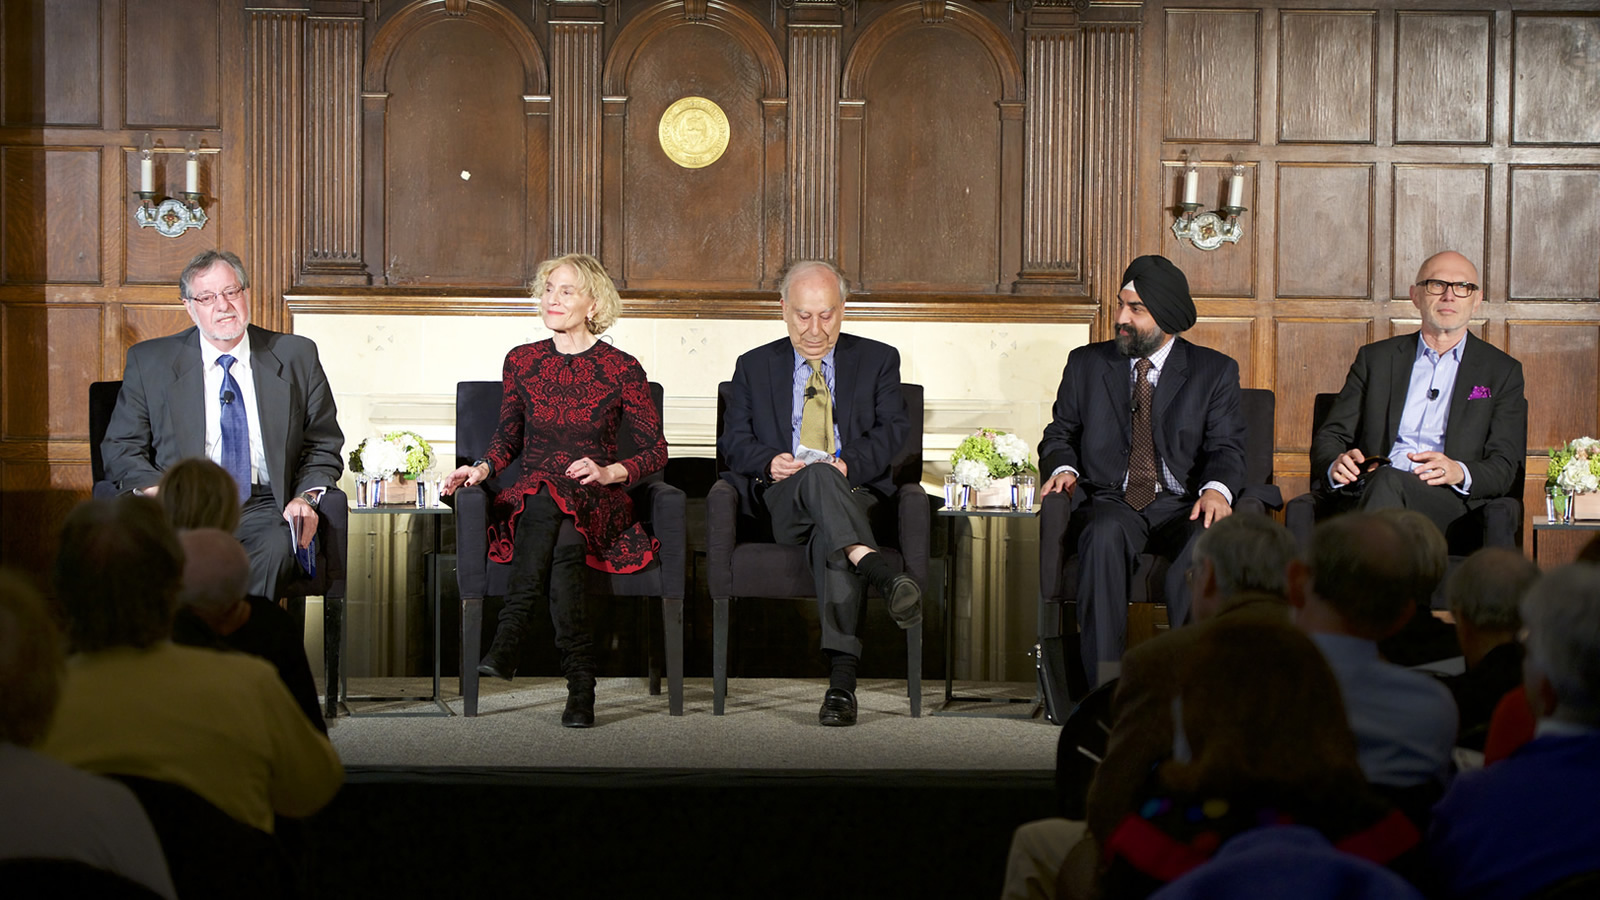 Panelists discuss lessons learned and paths forward in interfaith dialogue.